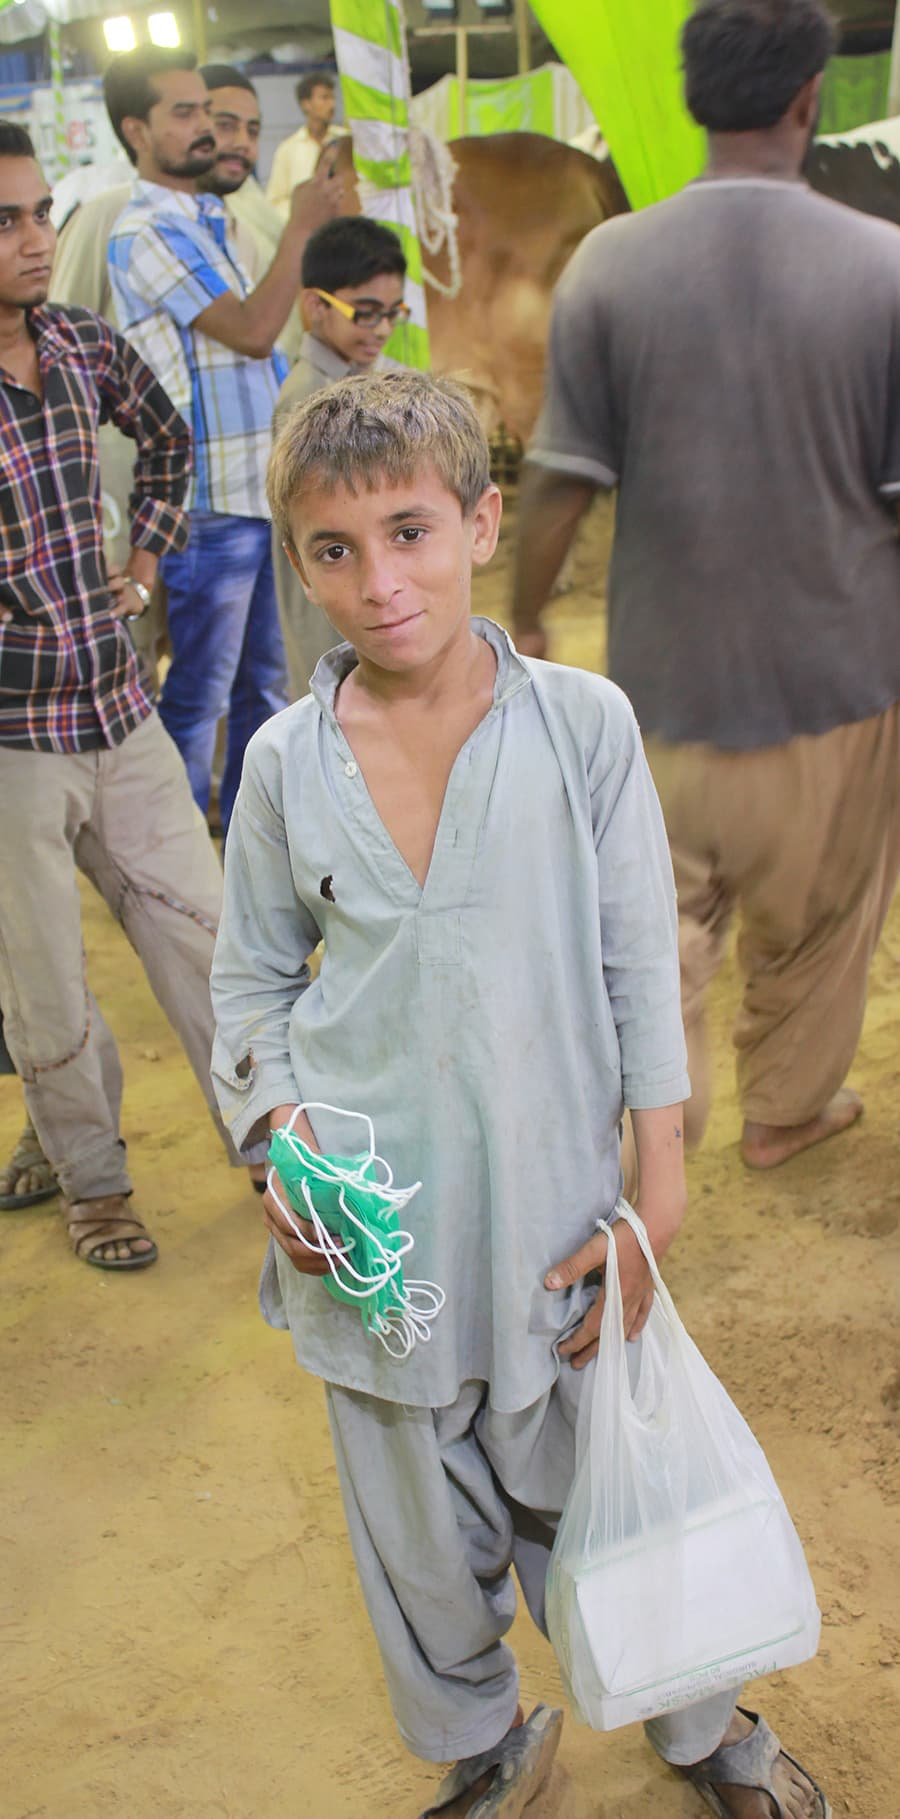 A young boy who sells masks to visitors at the cattle market poses for a photo. —Adeel Ahmed